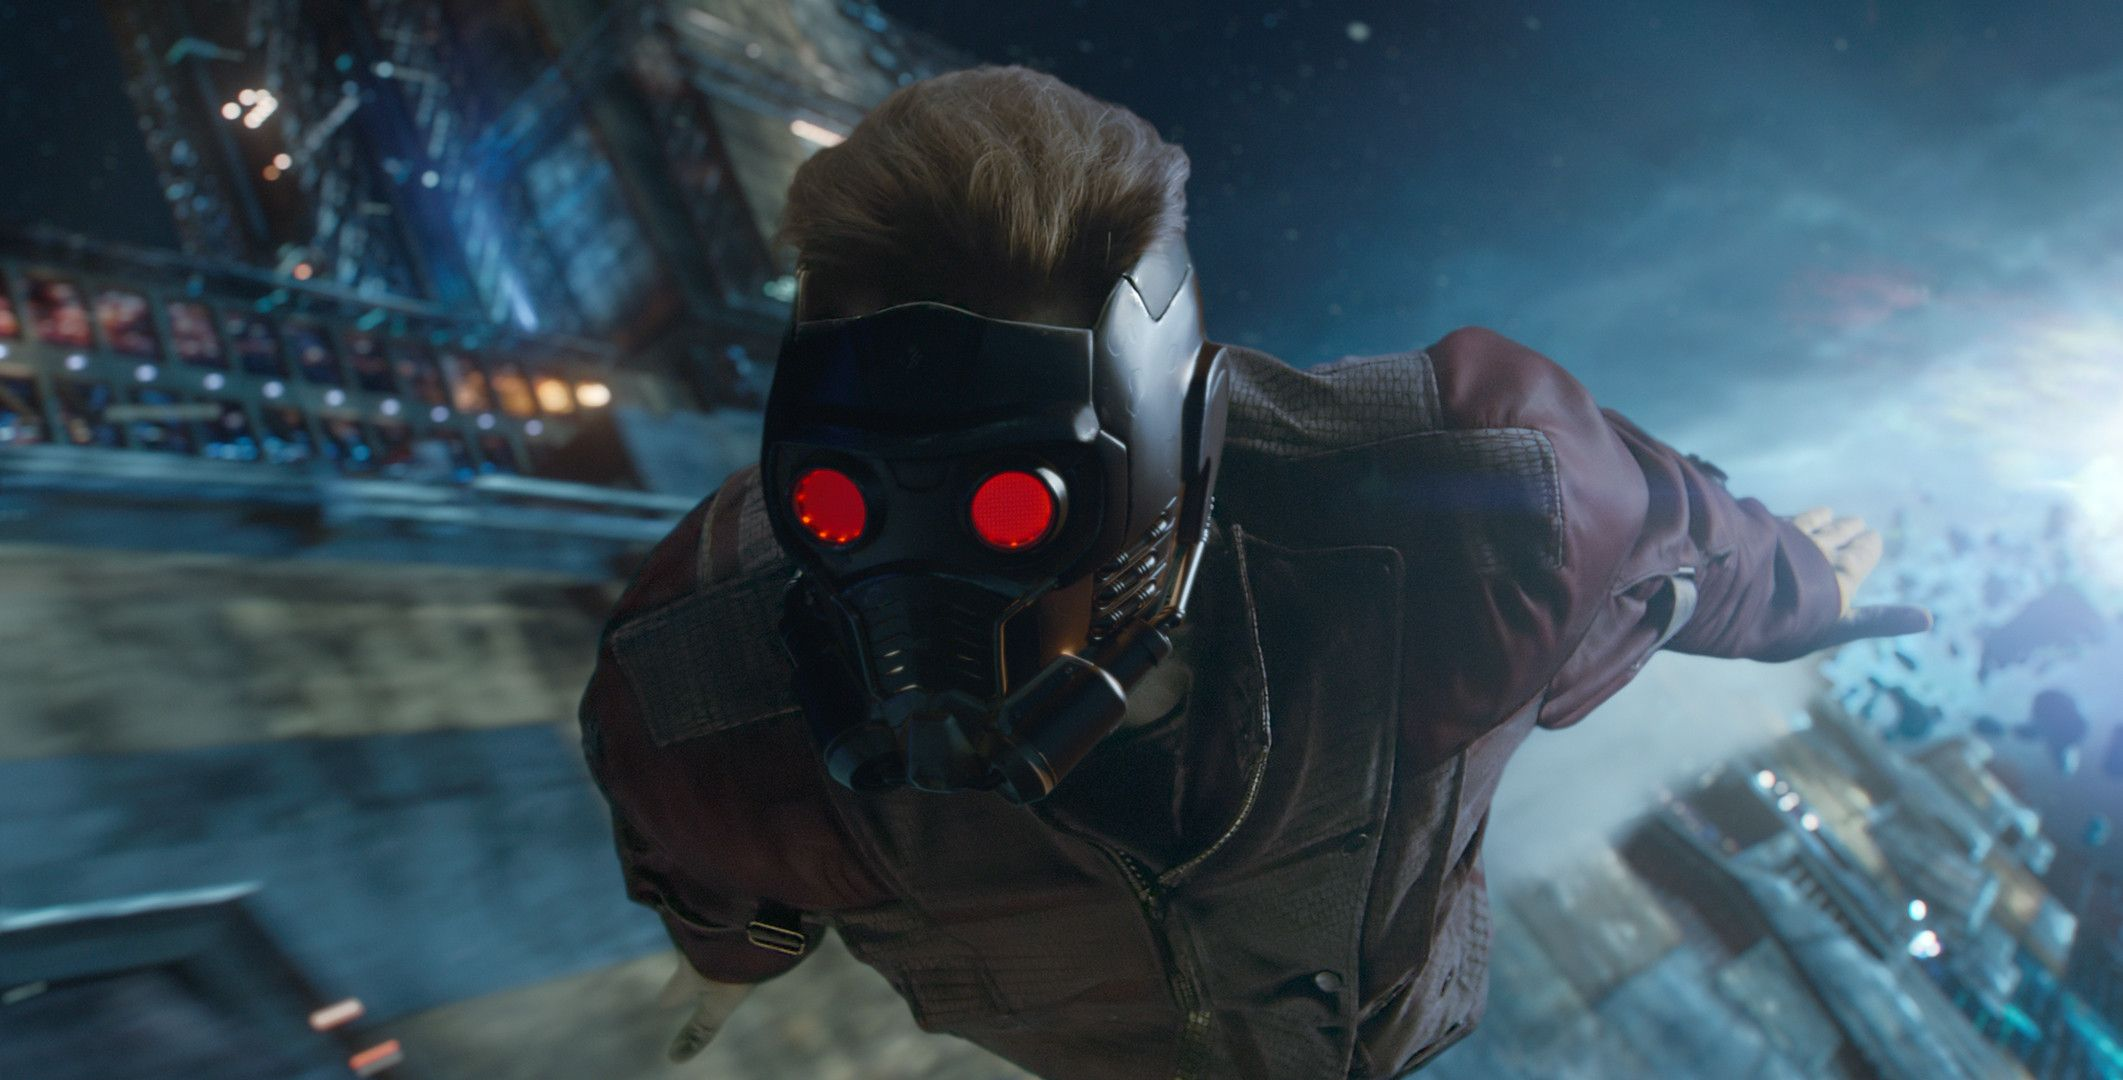 15 Hq Screenshots From Guardians Of The Galaxy Post Star Lord Guardians Of The Galaxy Peter Quill